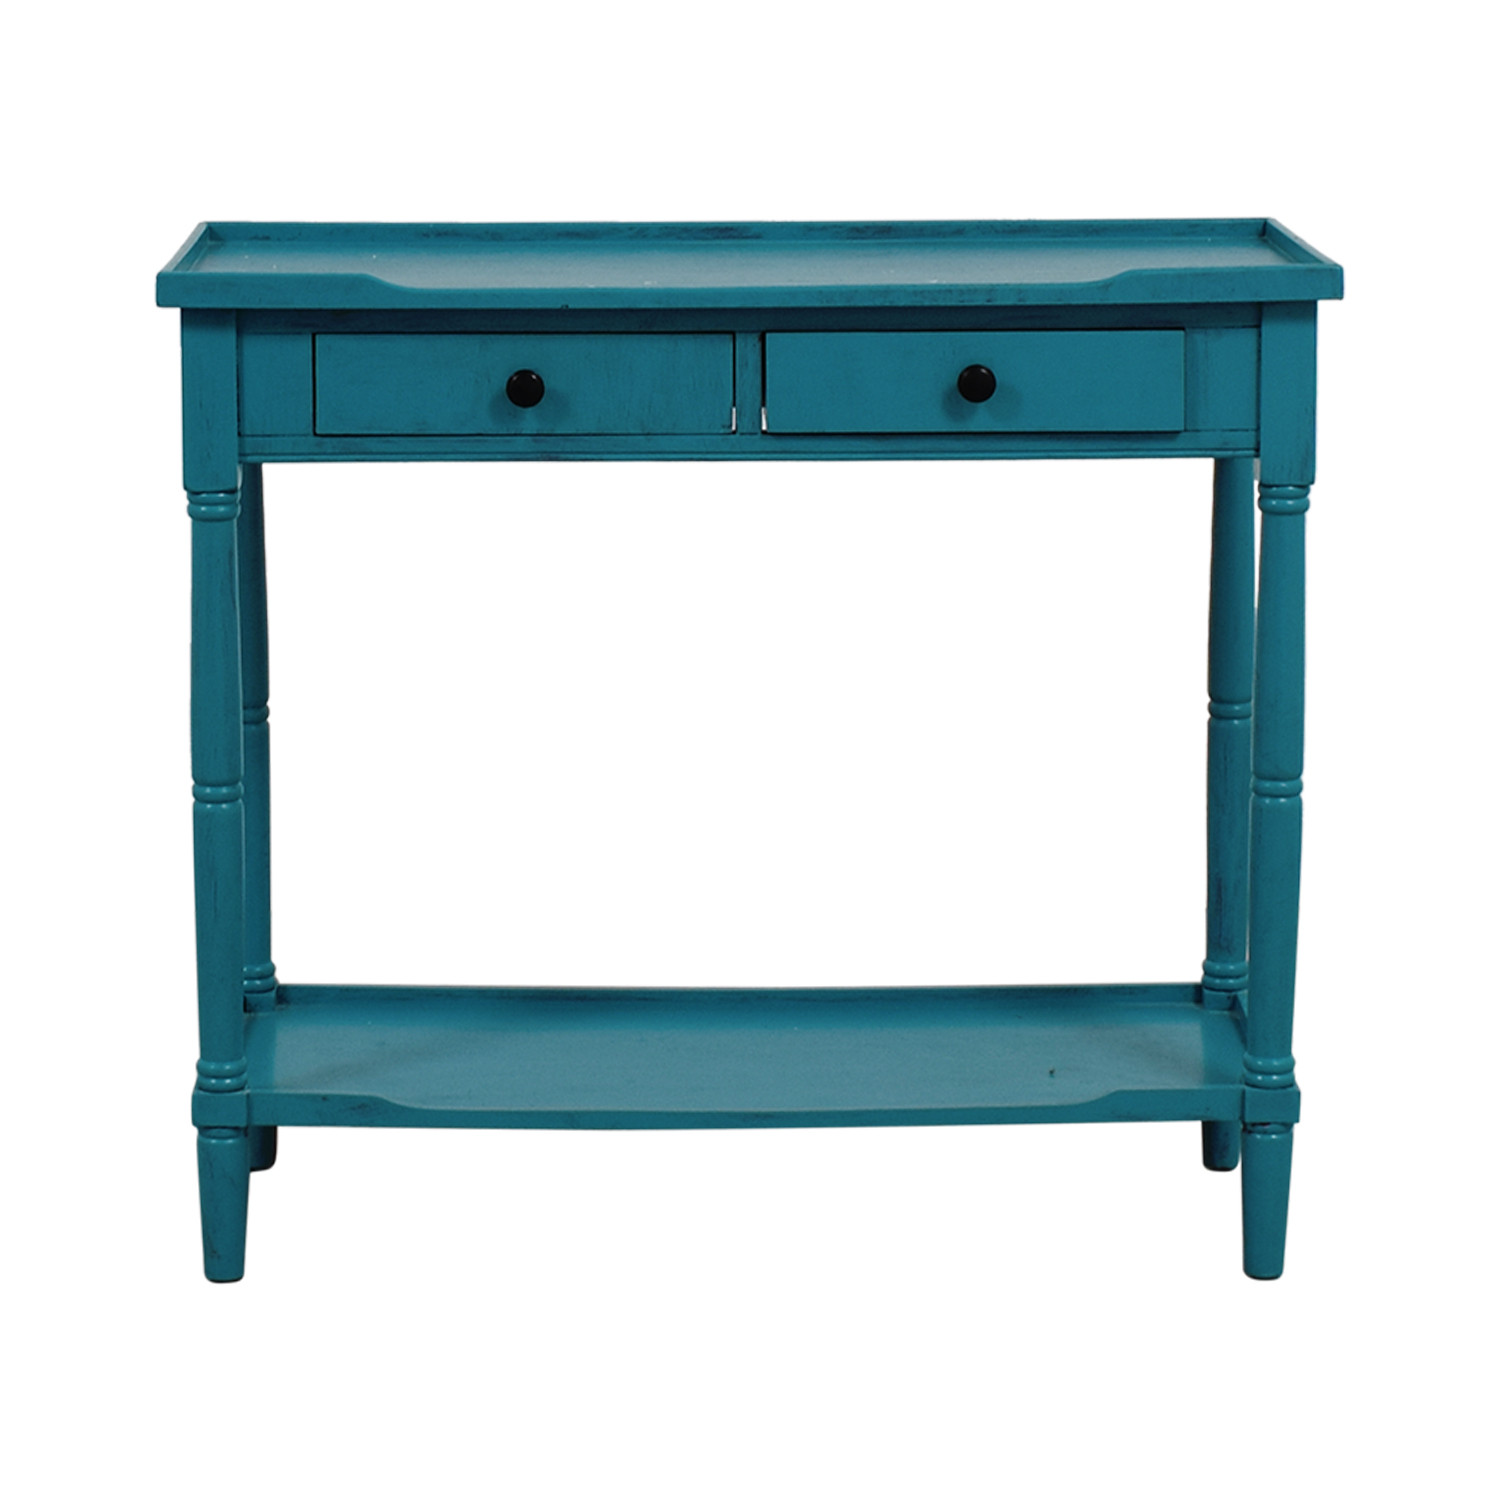 Best ideas about Teal Entryway Table . Save or Pin OFF Crate and Barrel Crate & Barrel Copper Top Side Now.